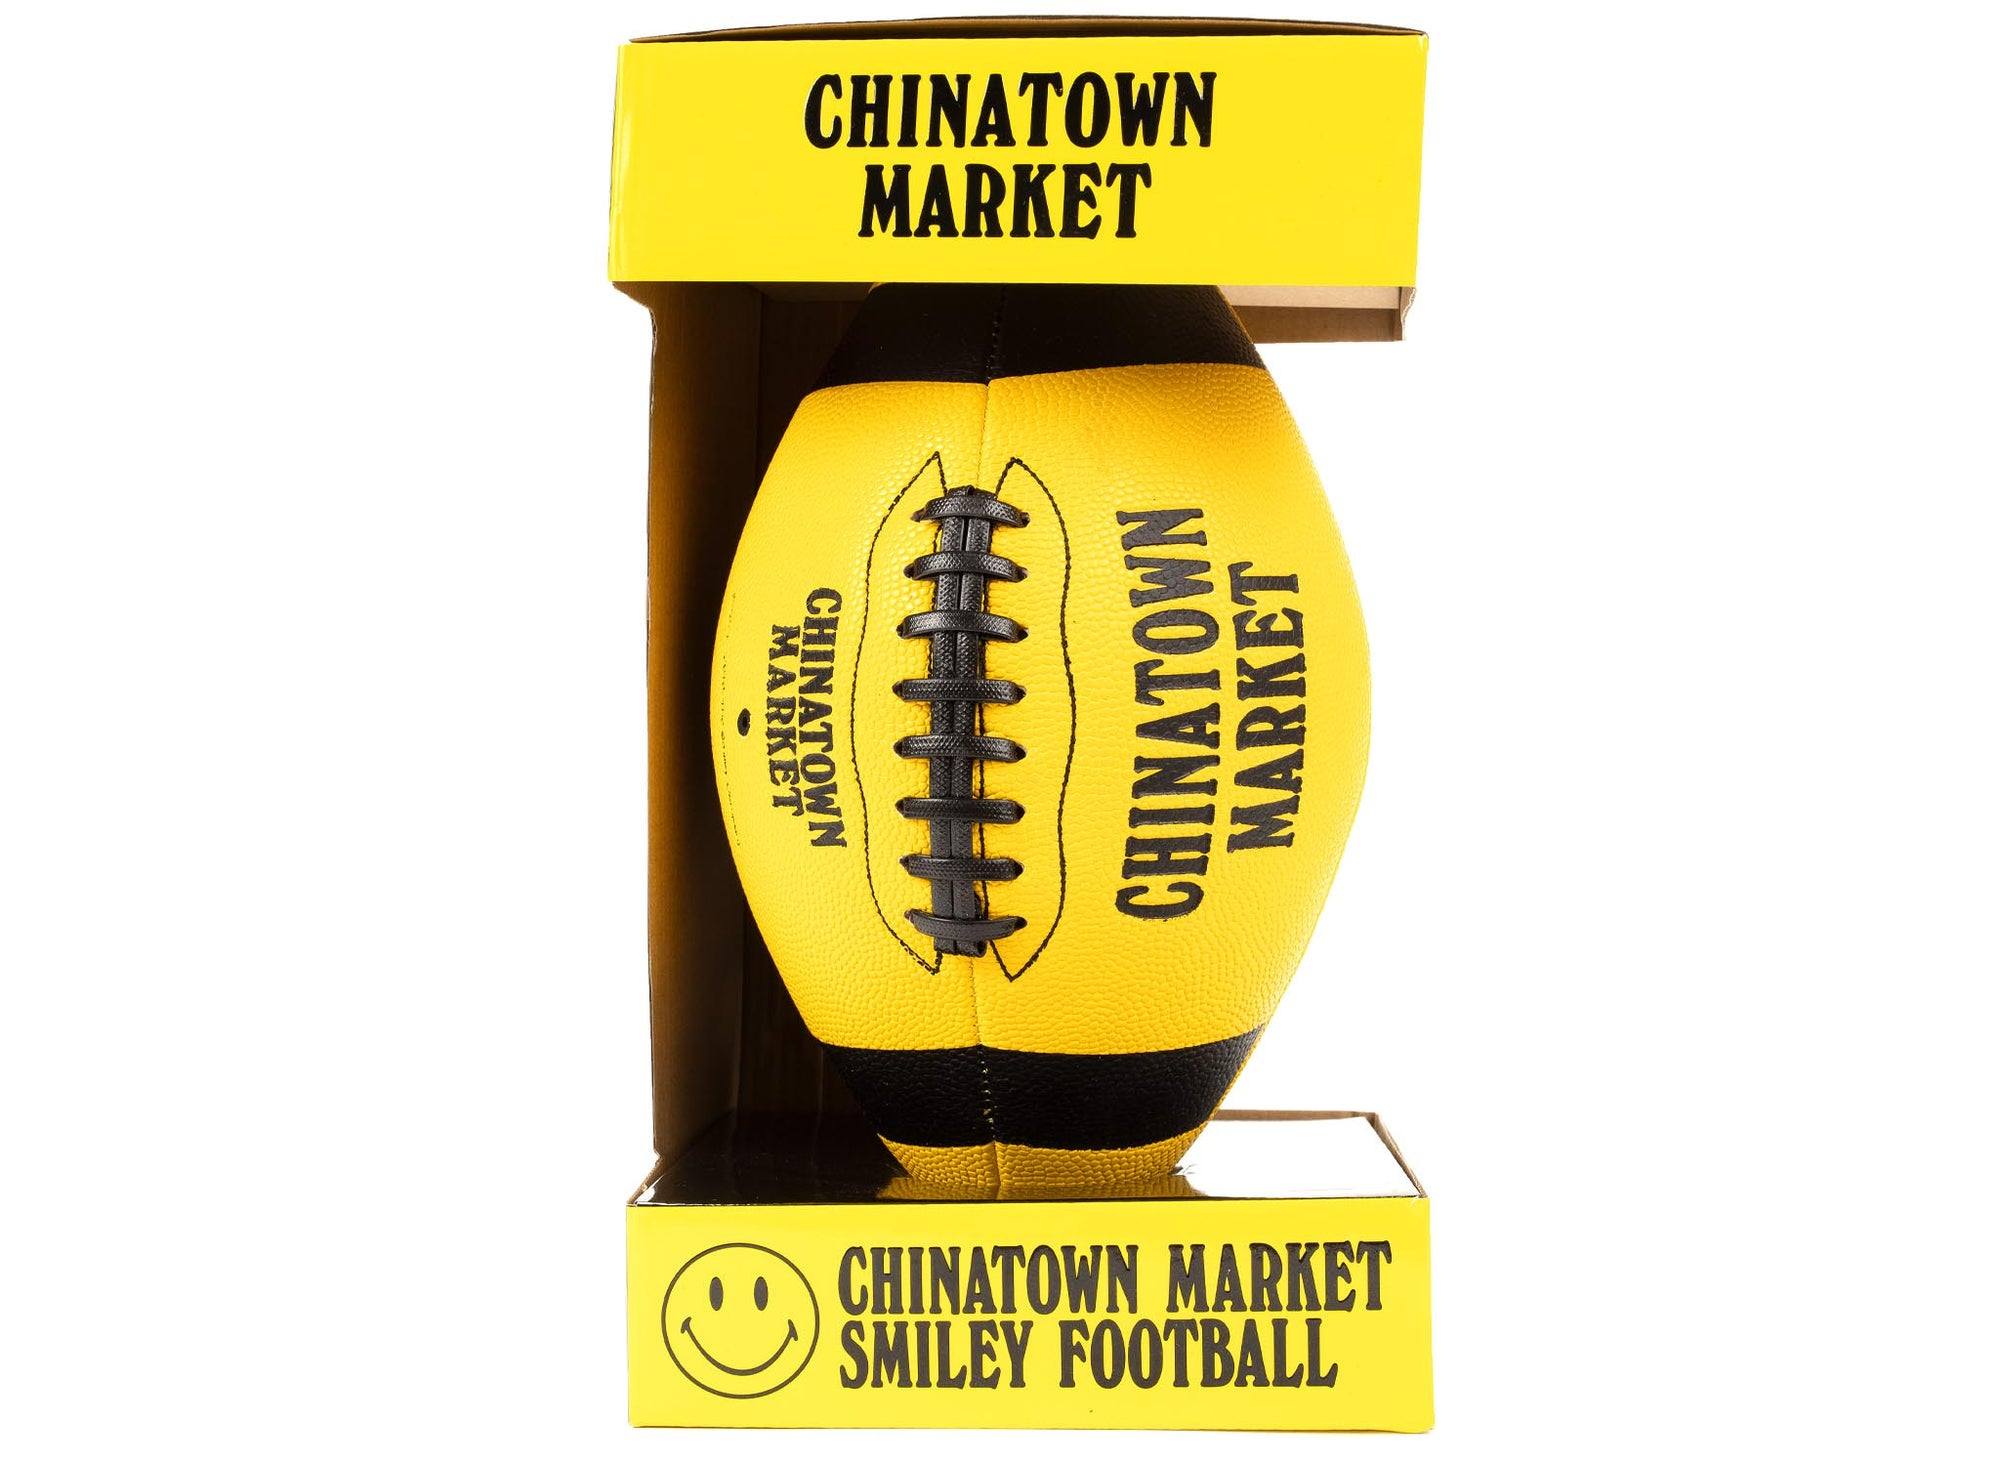 Chinatown Market FOOTBALL